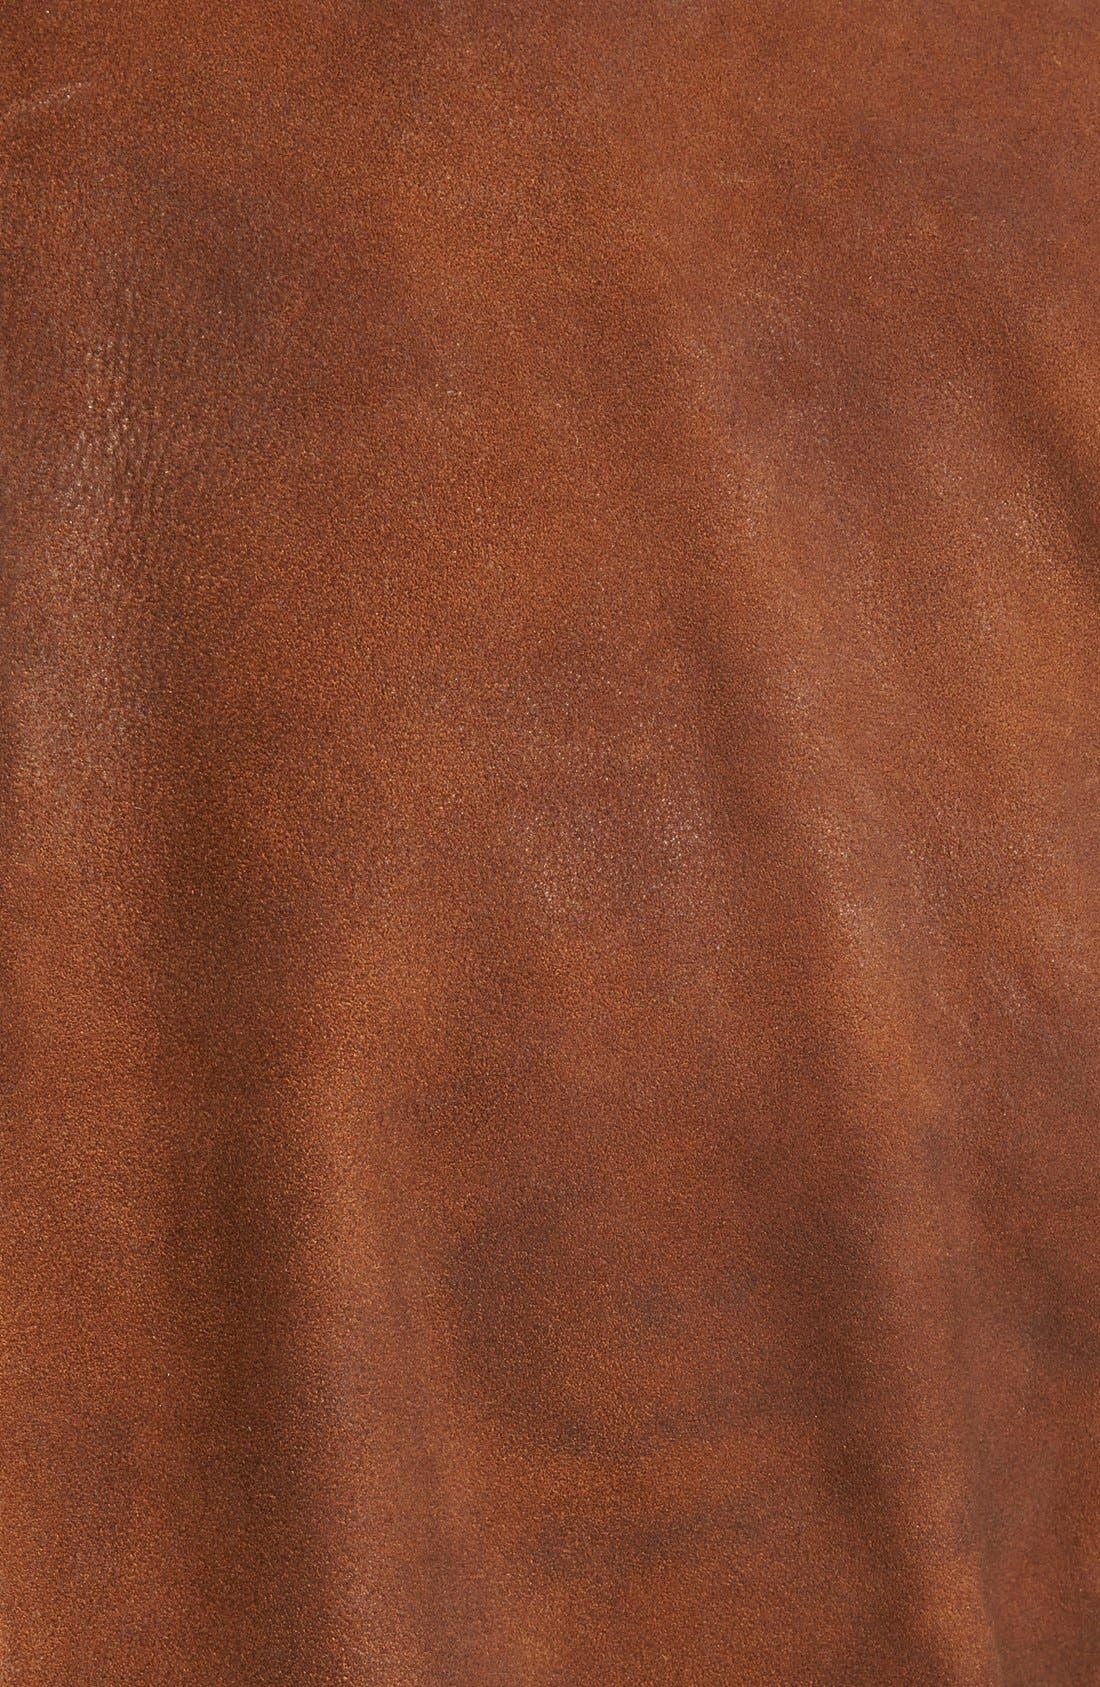 Classic Fit Distressed Leather Hybrid Coat,                             Alternate thumbnail 10, color,                             BROWN